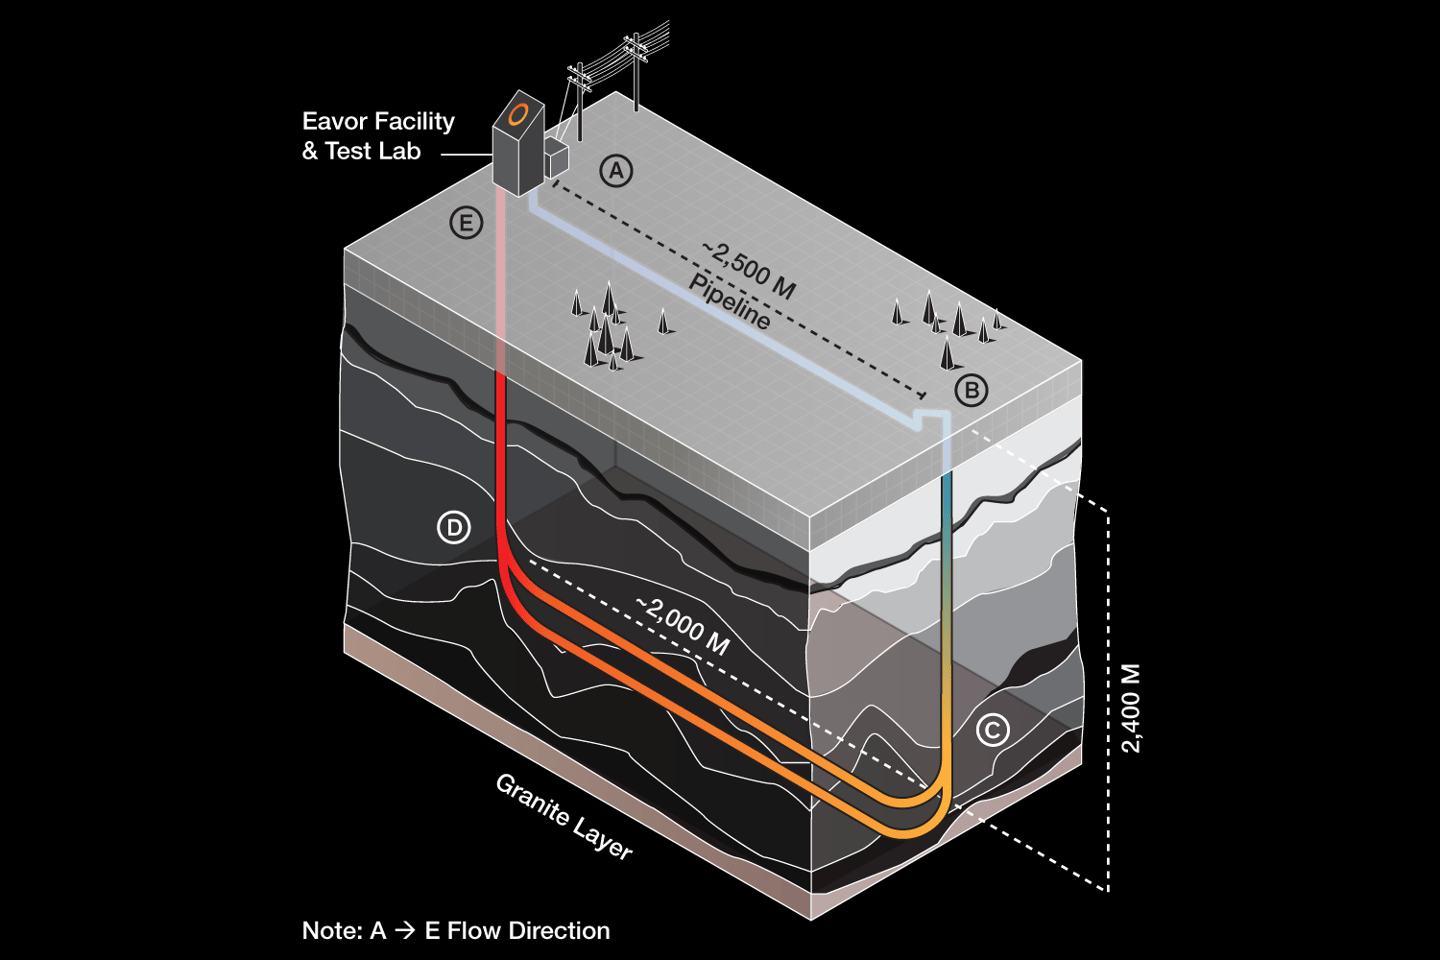 Eavor's low-enthalpy geothermal generators make use of the thermo-siphon effect to circulate fluid without any energy losses in pumping